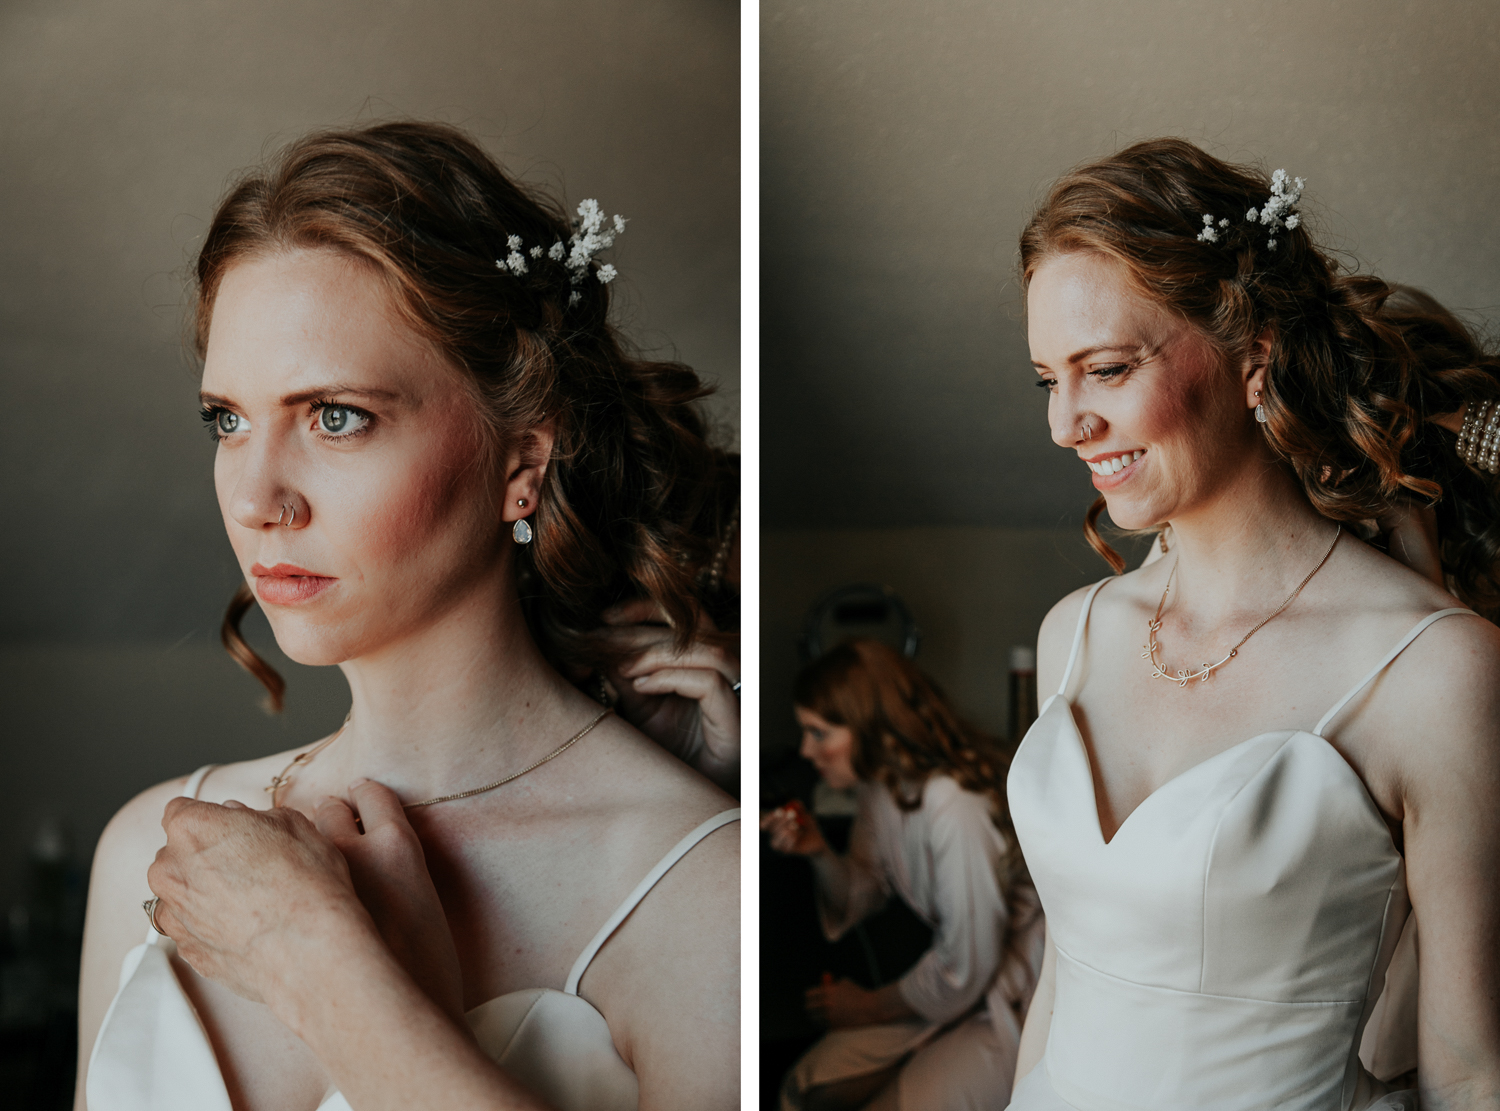 lethbridge-wedding-photographer-love-and-be-loved-photography-dan-tynnea-picture-image-photo-133.jpg